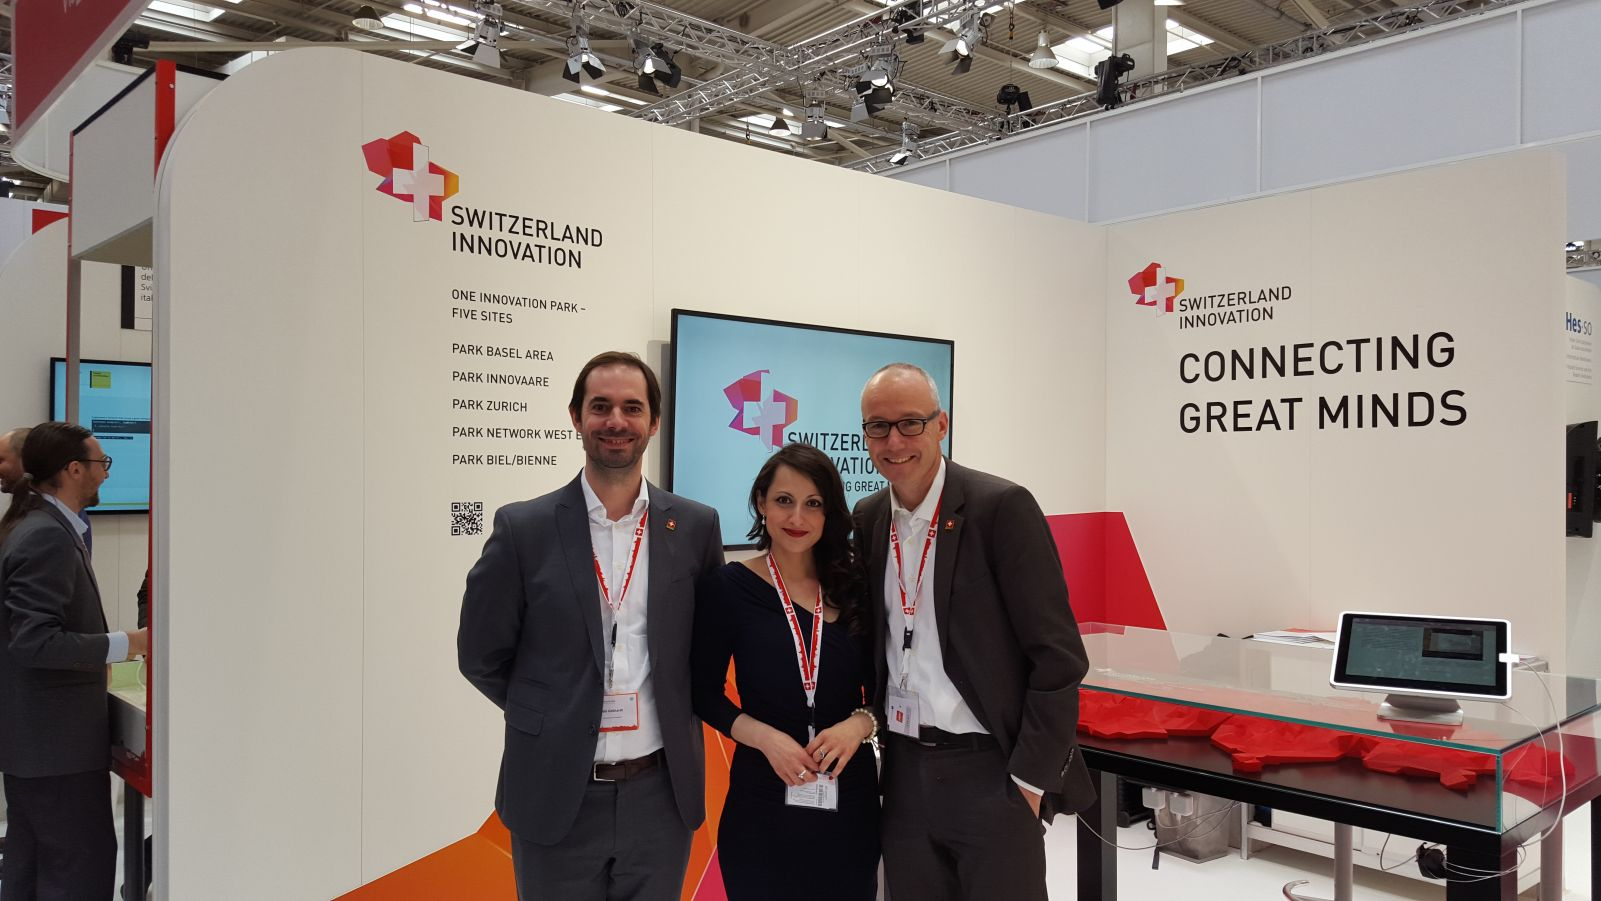 PARK INNOVAARE at CeBIT